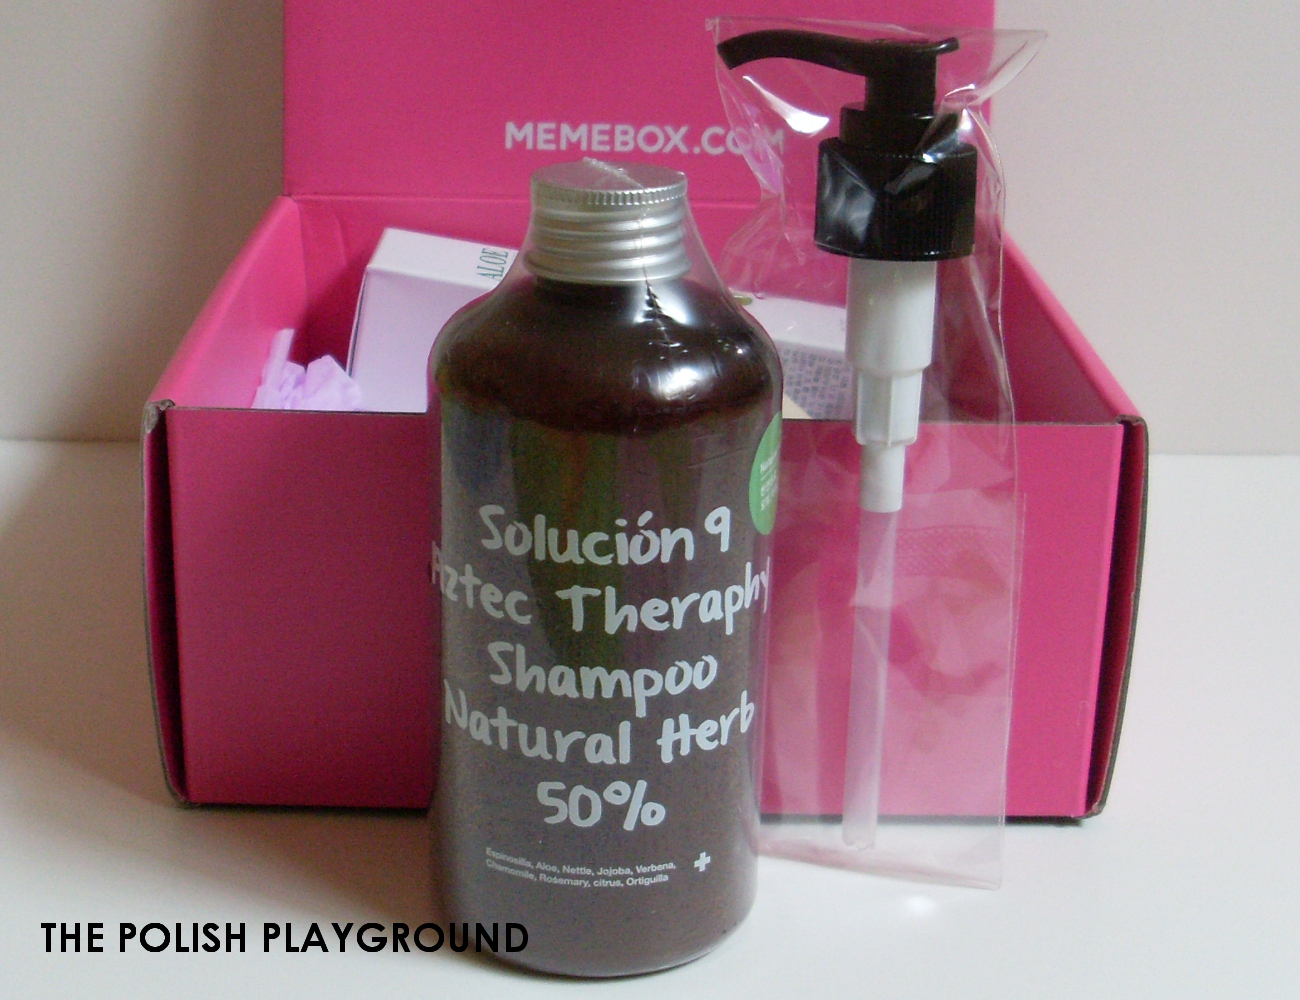 Memebox Special #64 Green Food Cosmetics Unboxing - Solucion 9 Aztec Therapy Shampoo